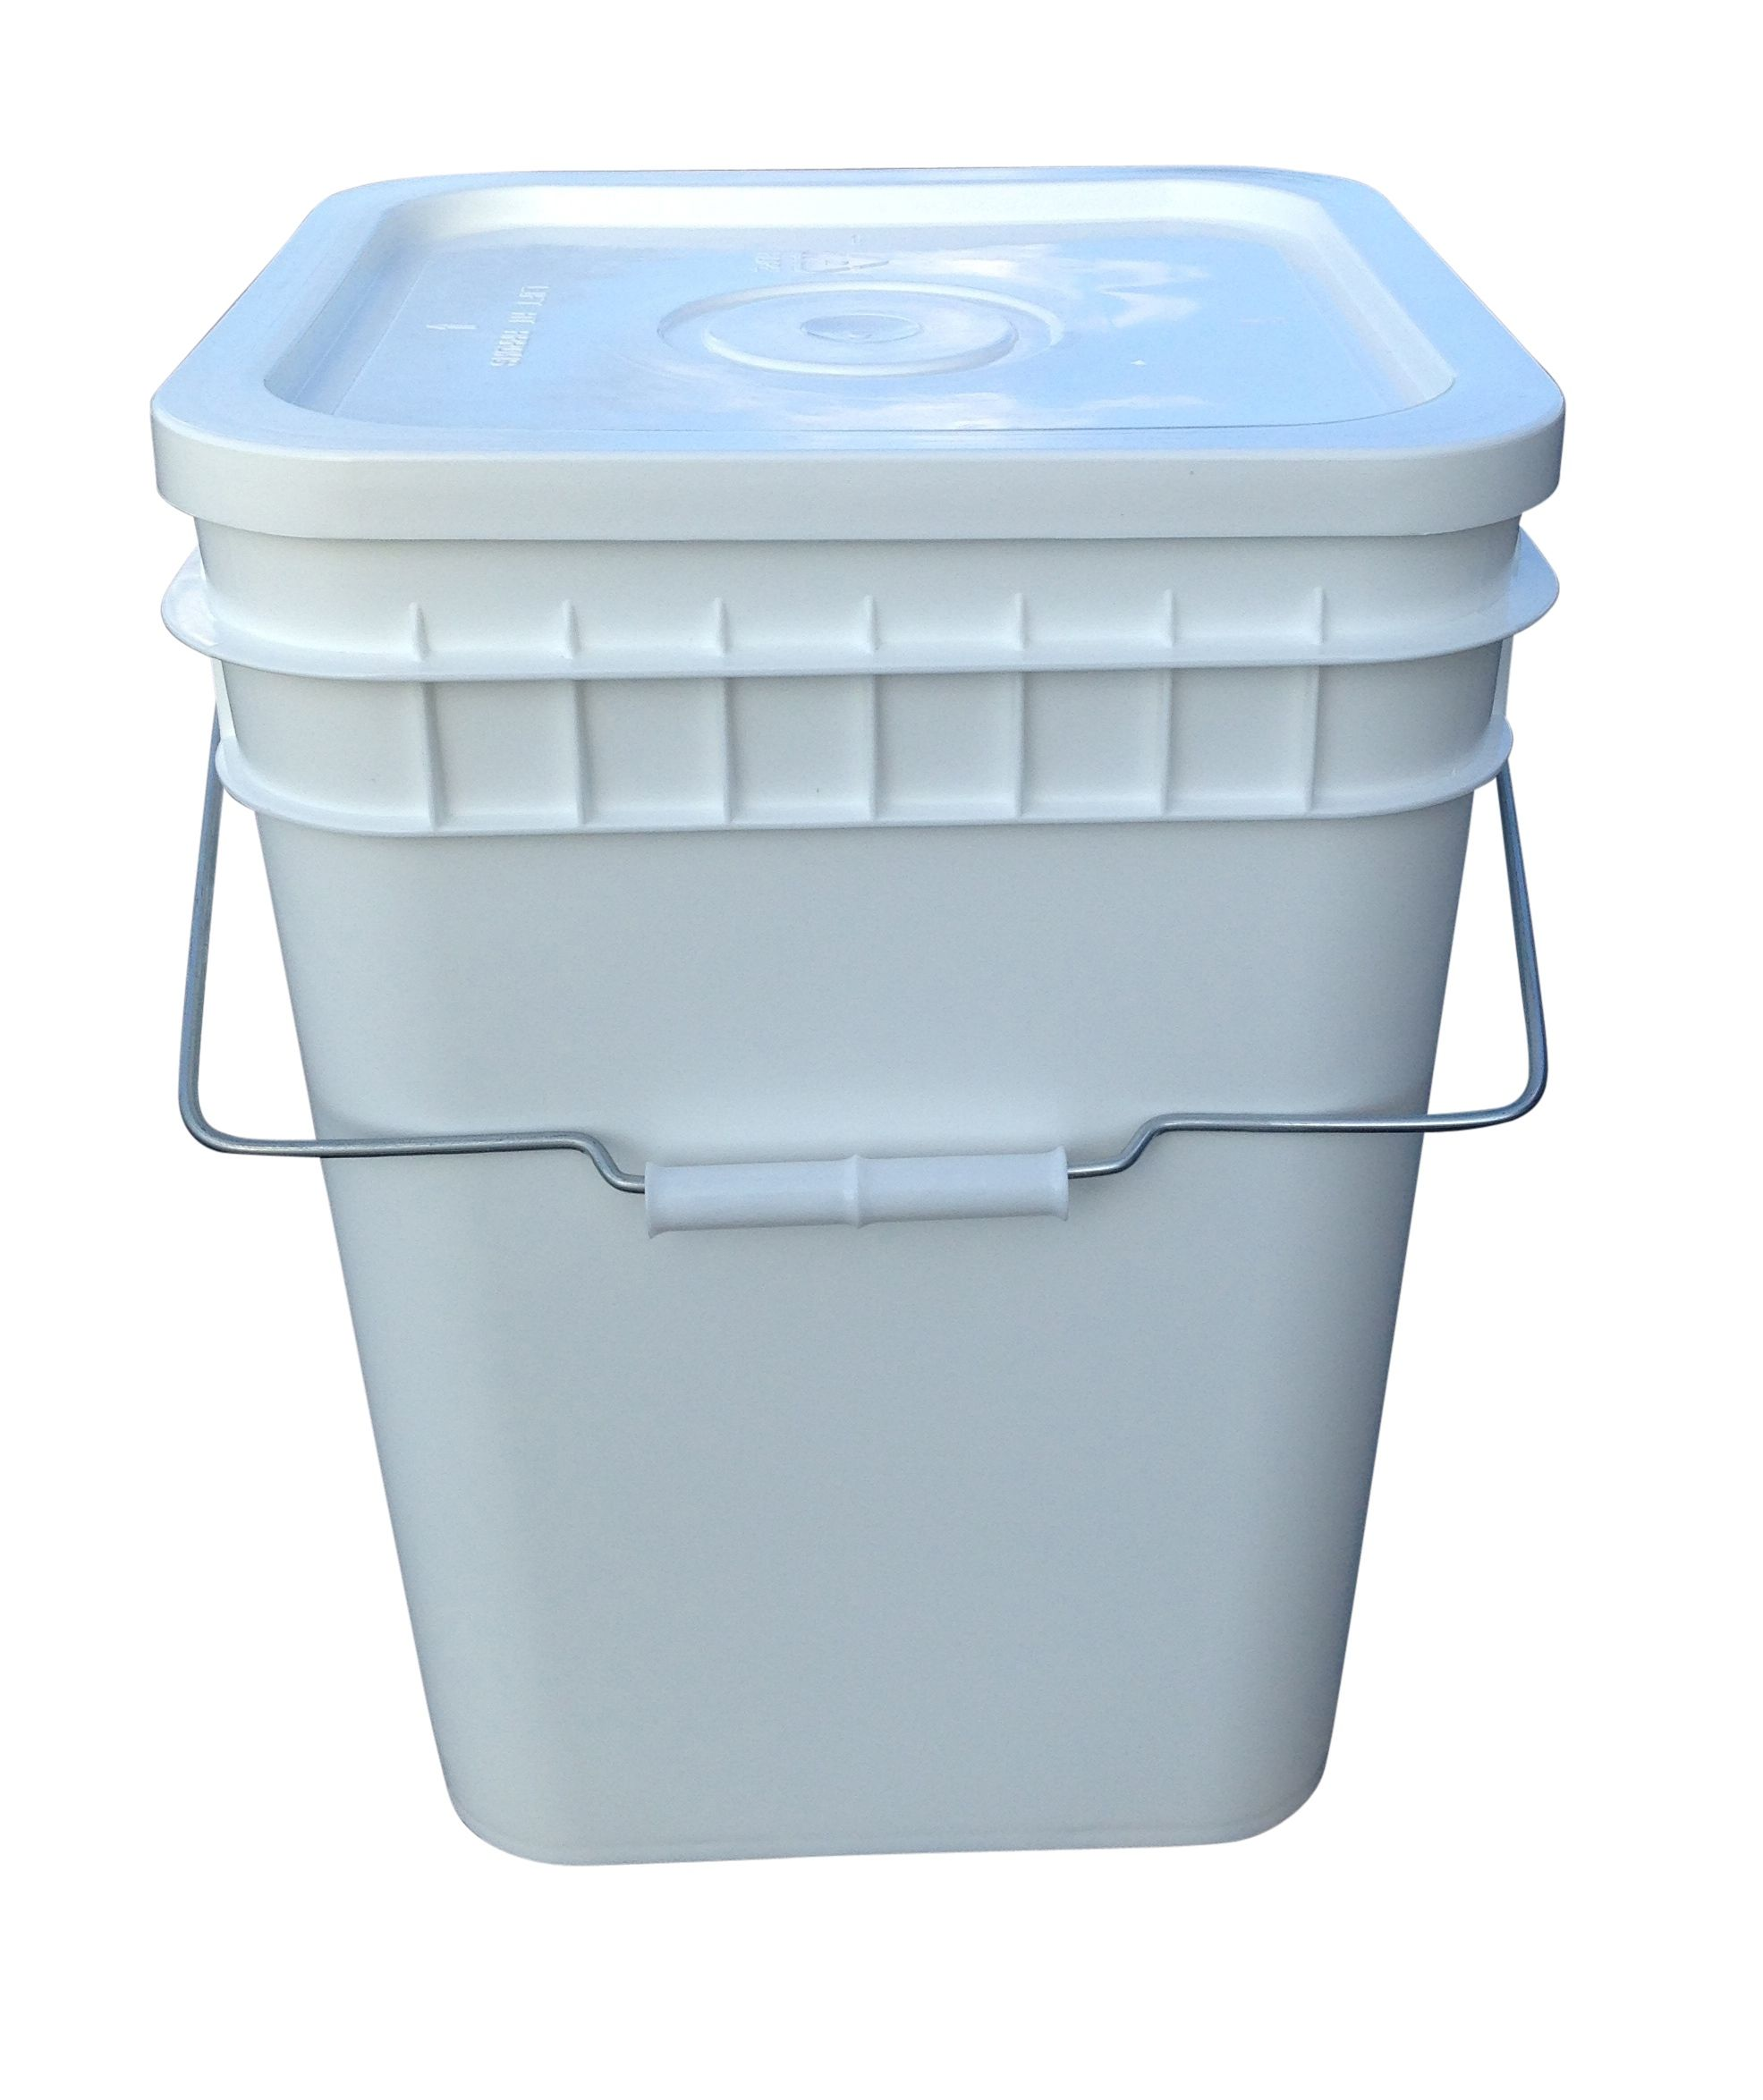 Food Grade 3 Gallon Square Buckets So Useful For Garden And Kitchen I Stack Em Up Food Storage Living Off The Land Survival Prepping